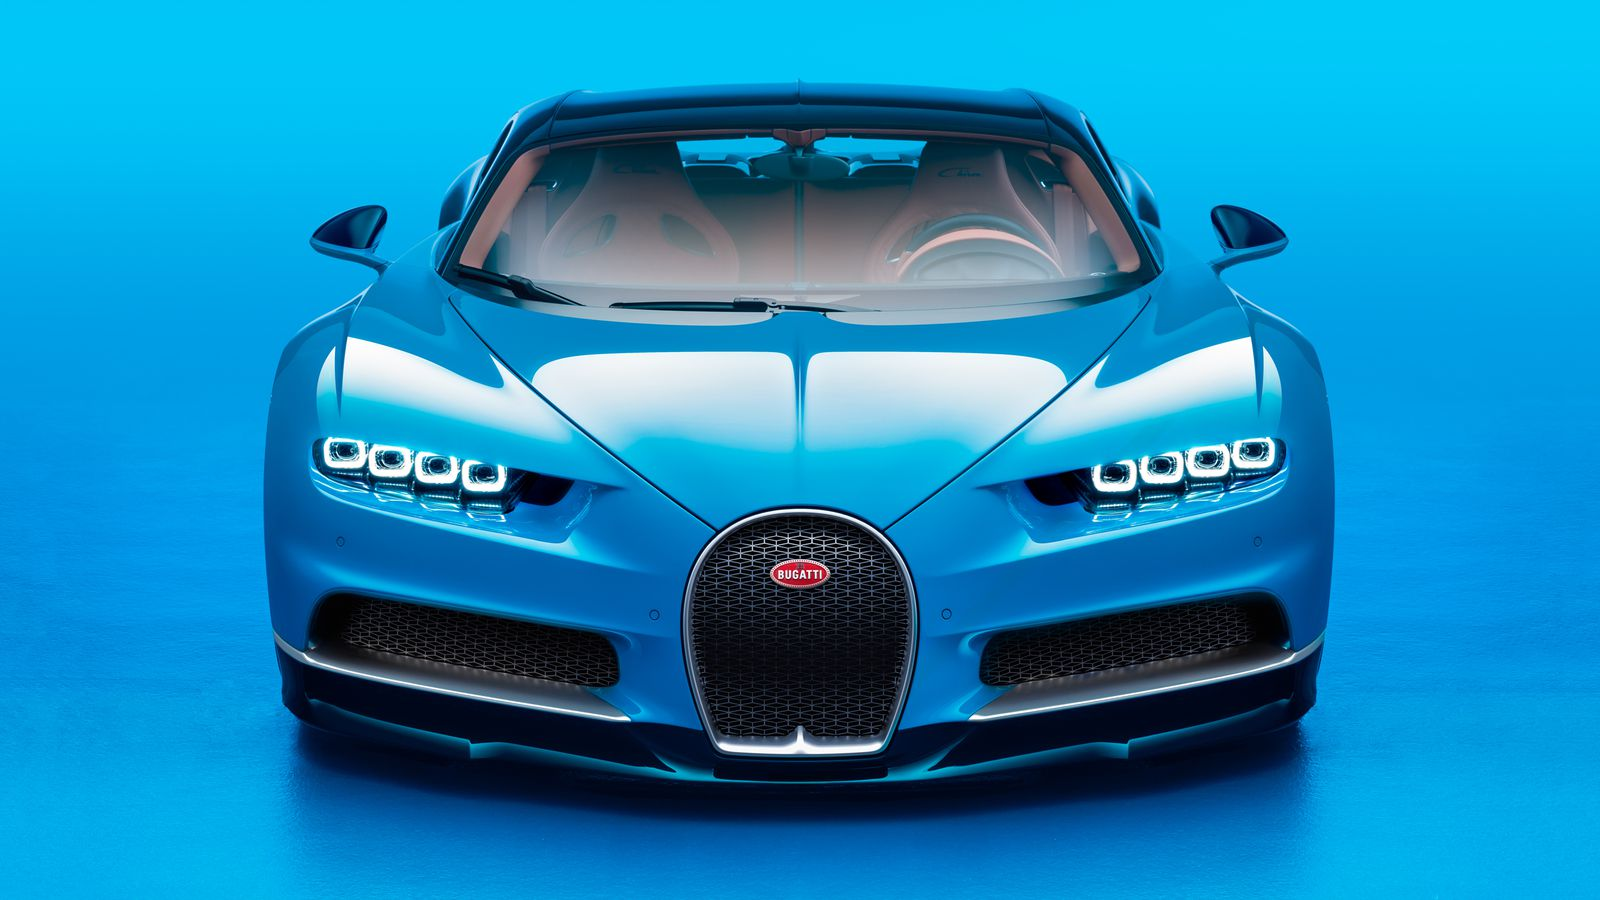 Bugatti bugatti how many made : Bugatti's Chiron is the beastly, faster-than-fast, 1,500hp Veyron ...